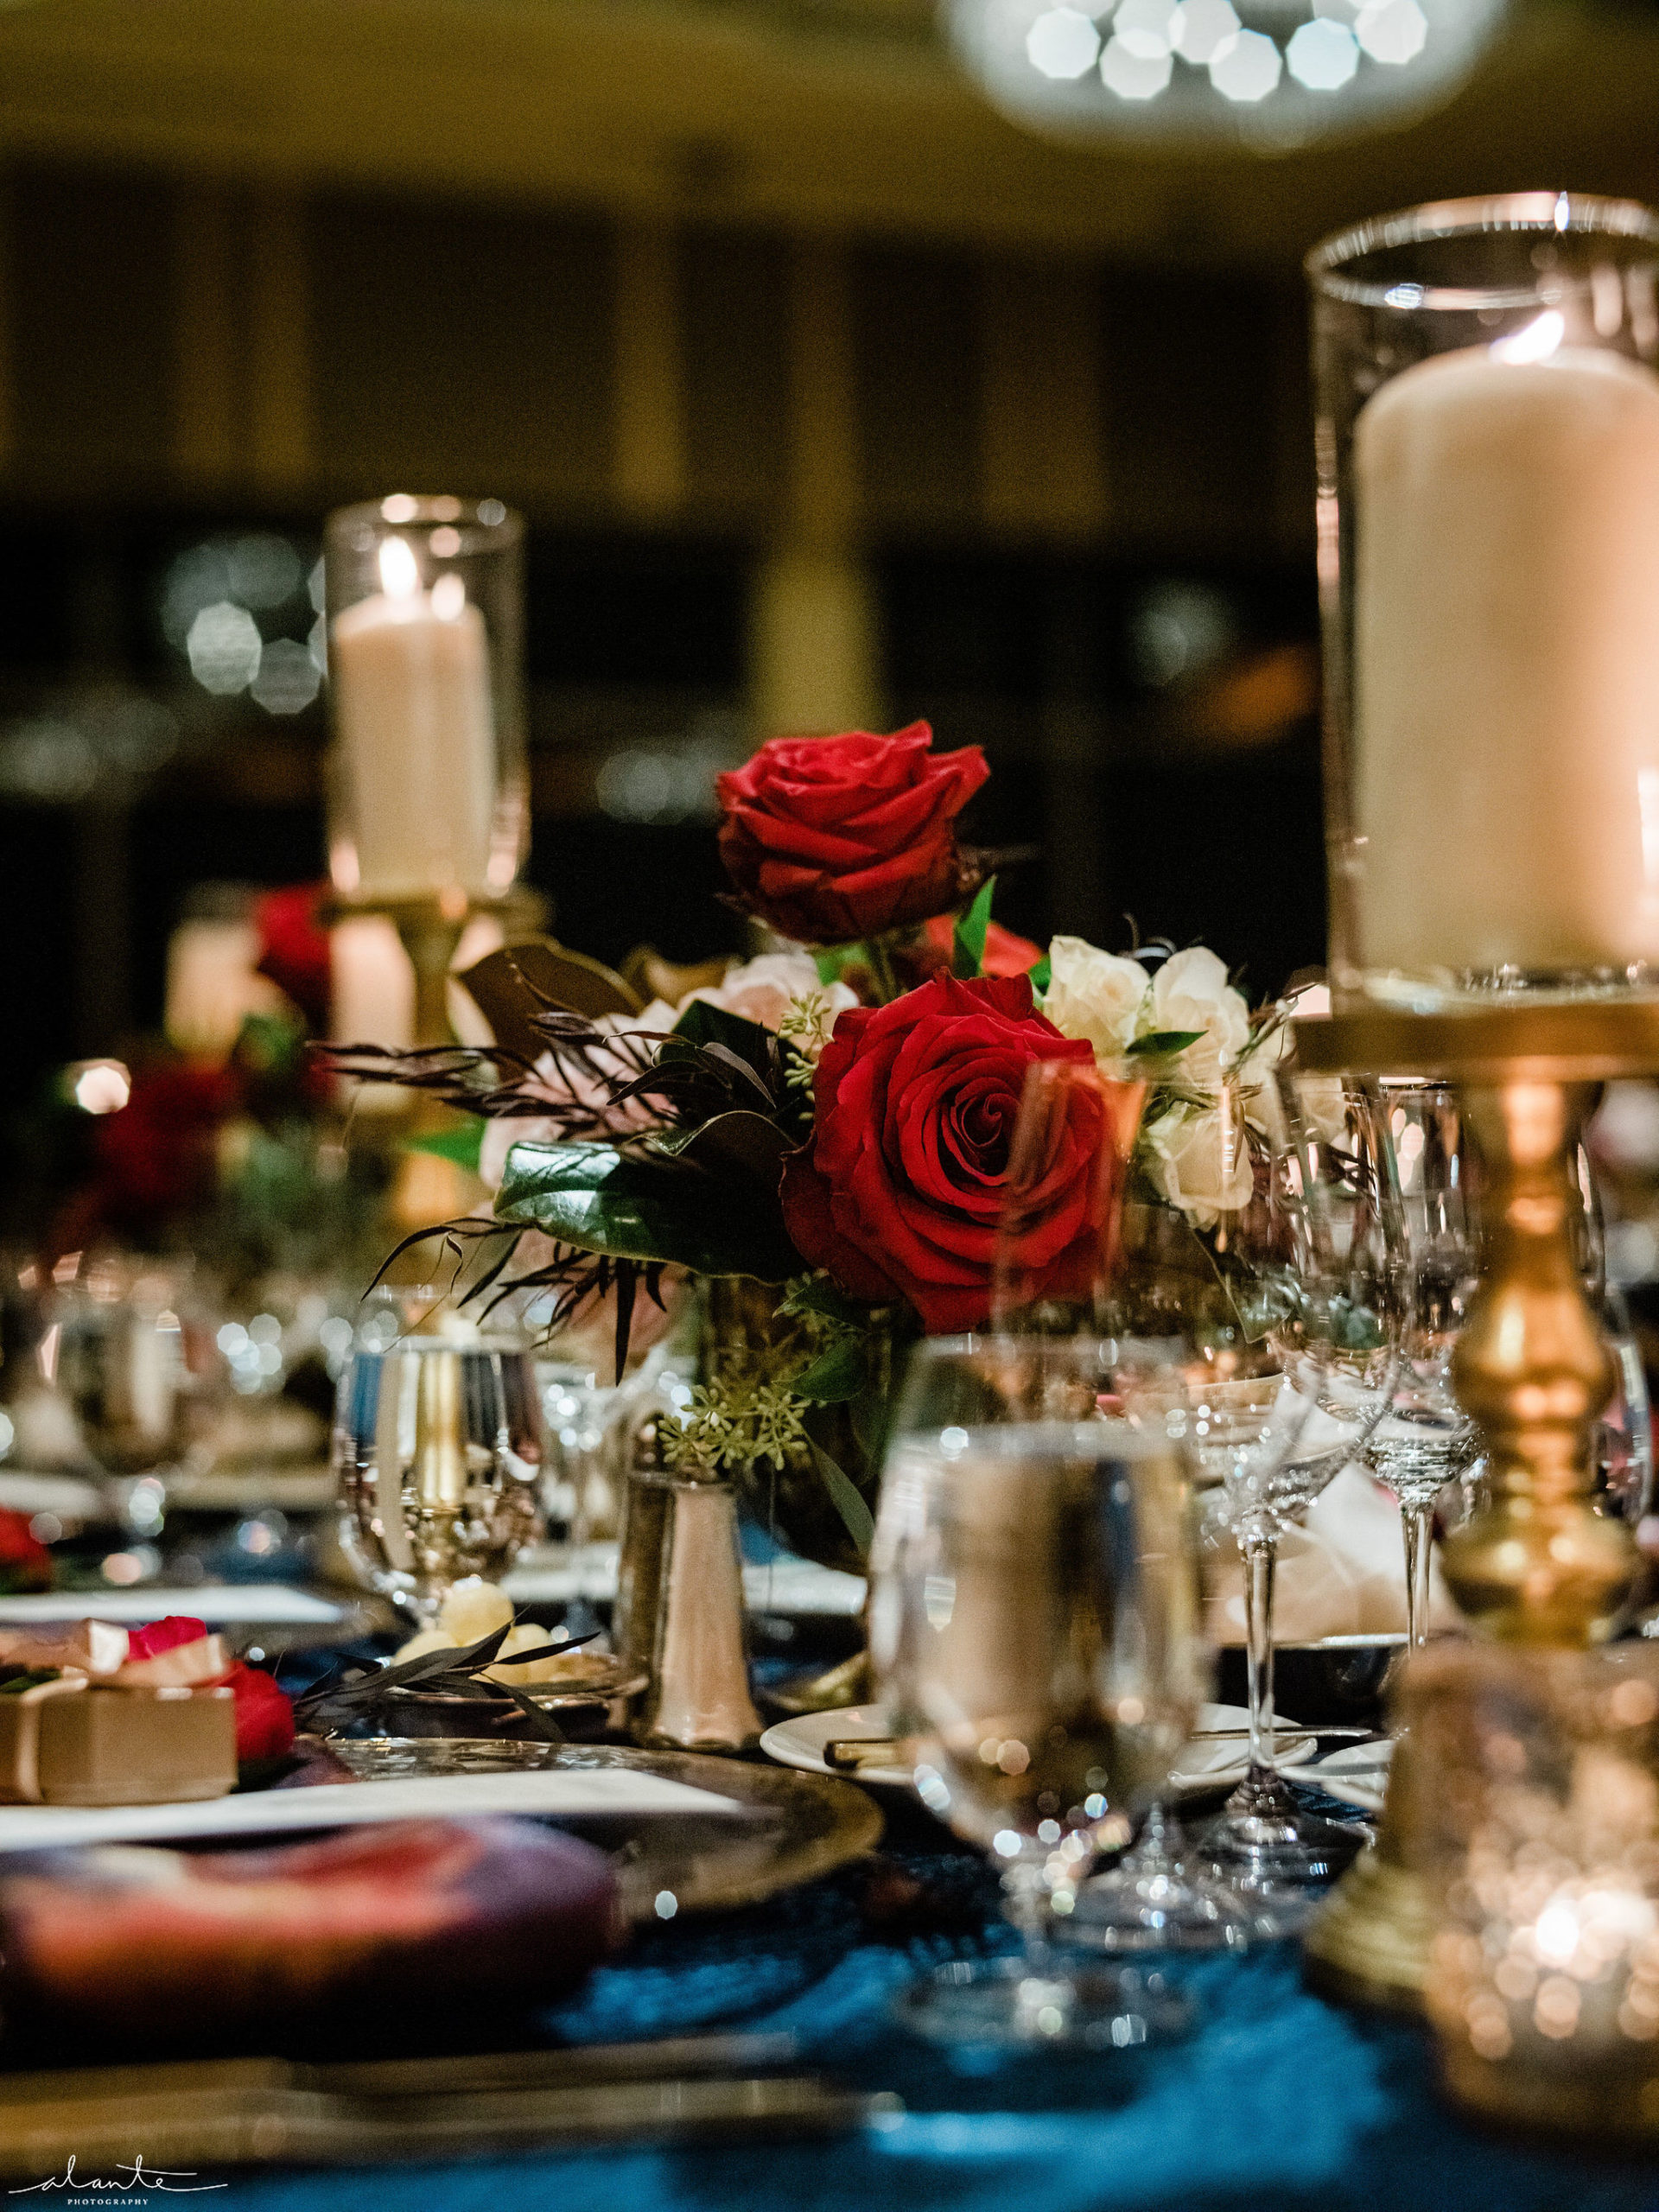 Red winter wedding reception centerpiece of roses and magnolia with pillar candles.